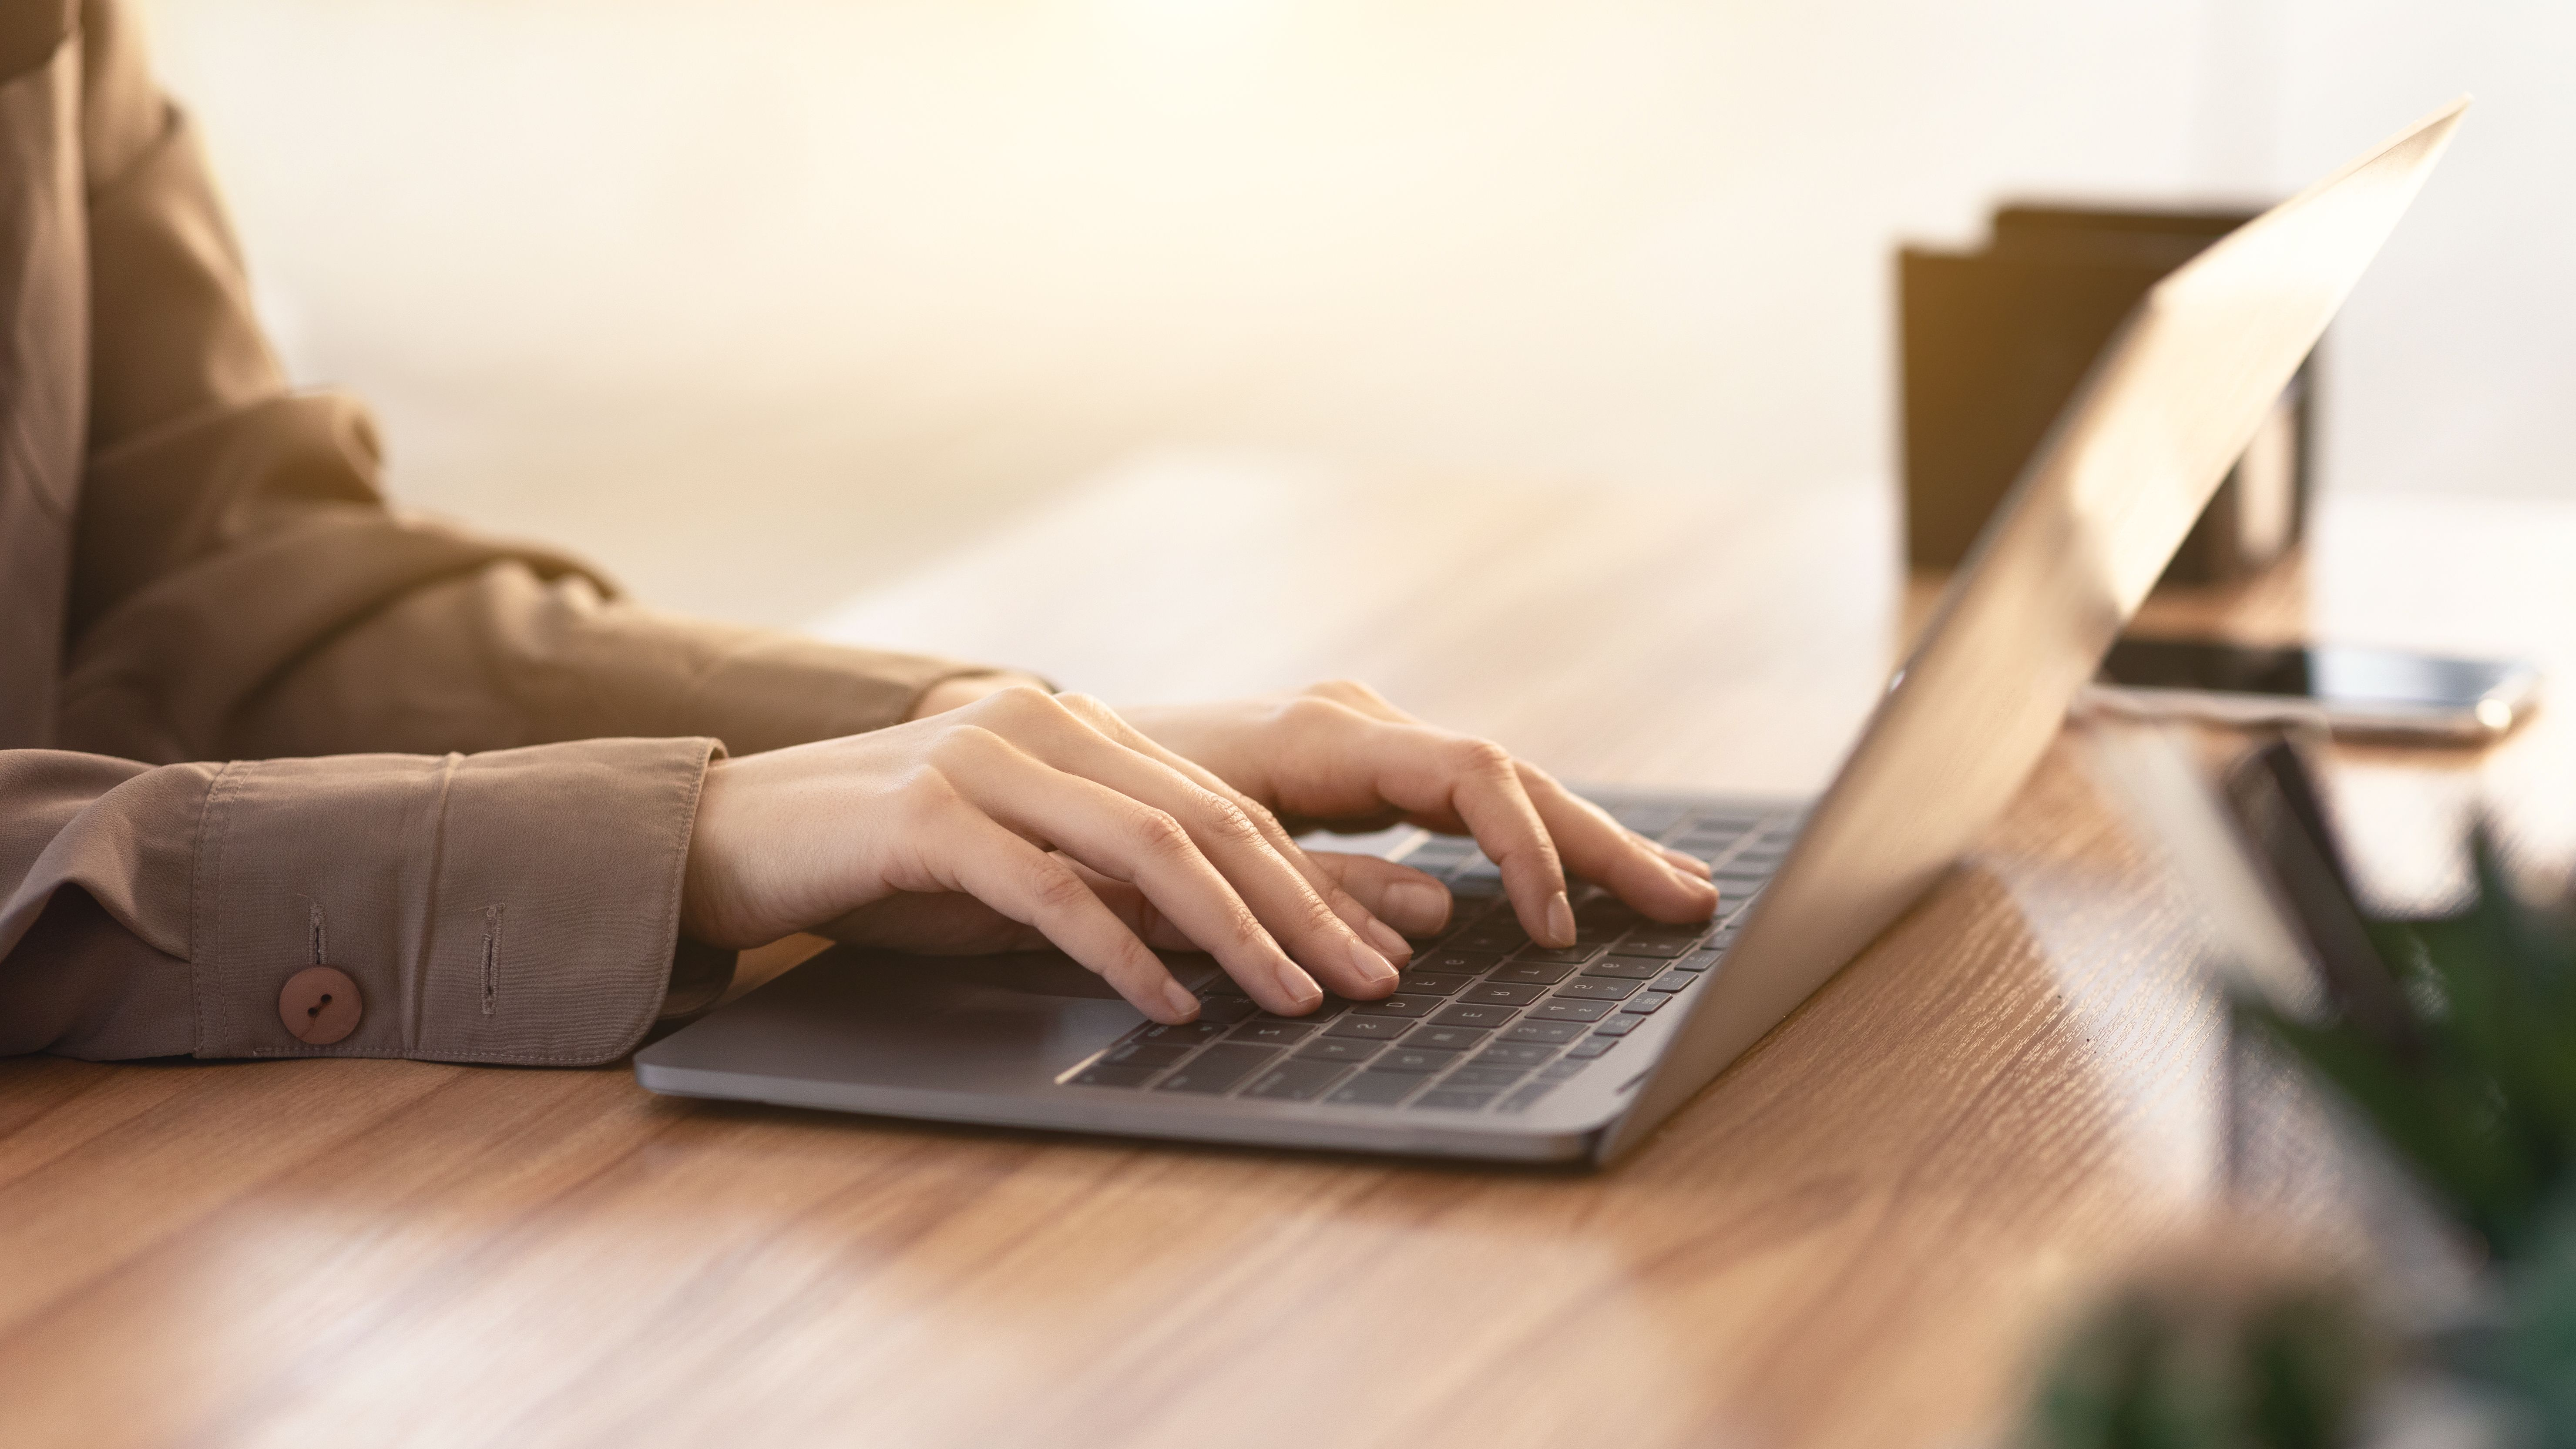 Cropped image of caucasian girl working on laptop